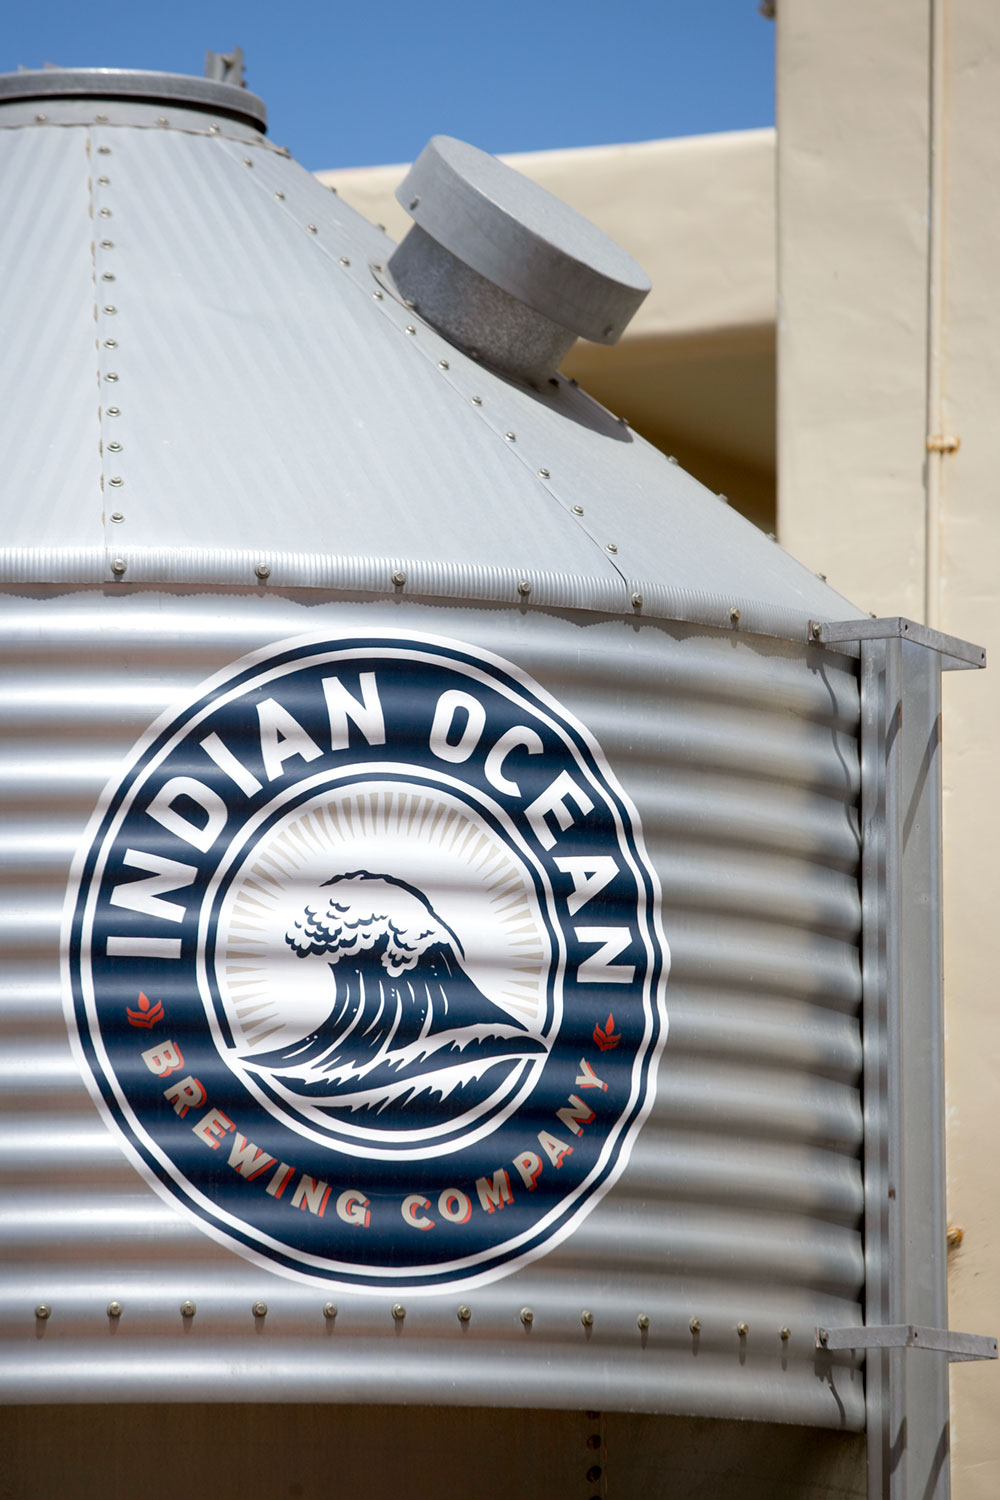 Indian Ocean Brewing Company – Brand